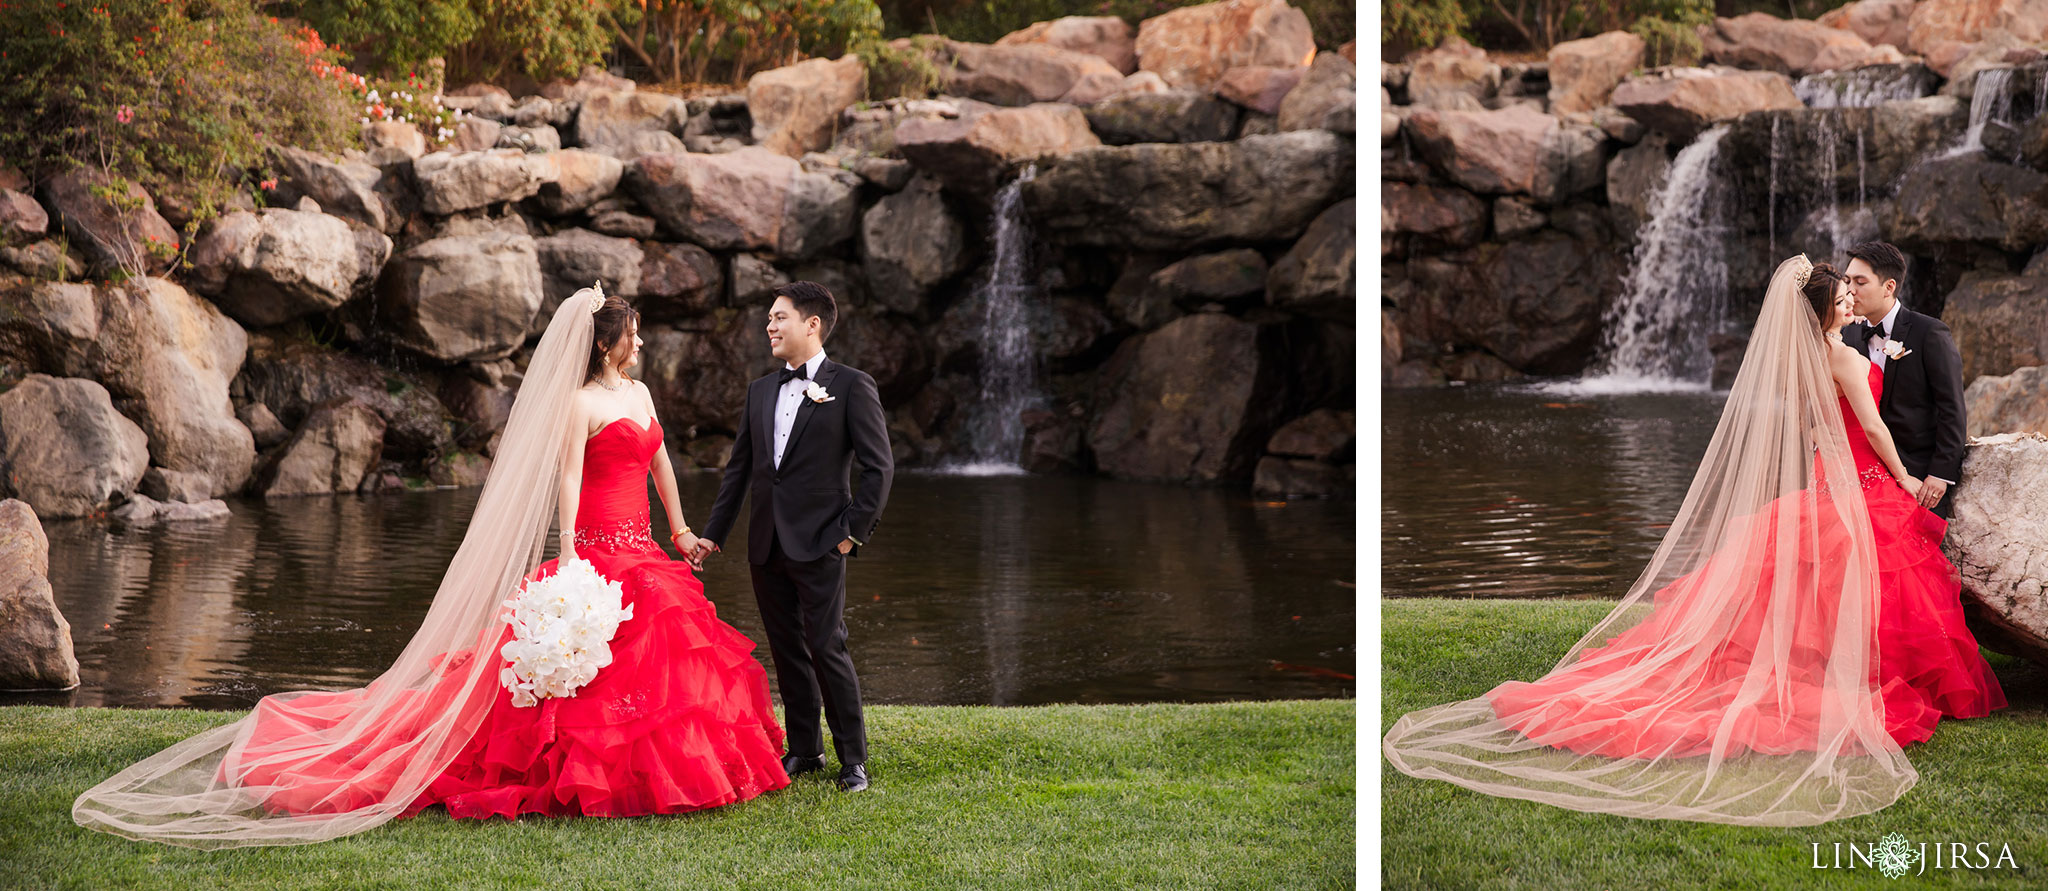 28 four seasons westlake village chinese wedding